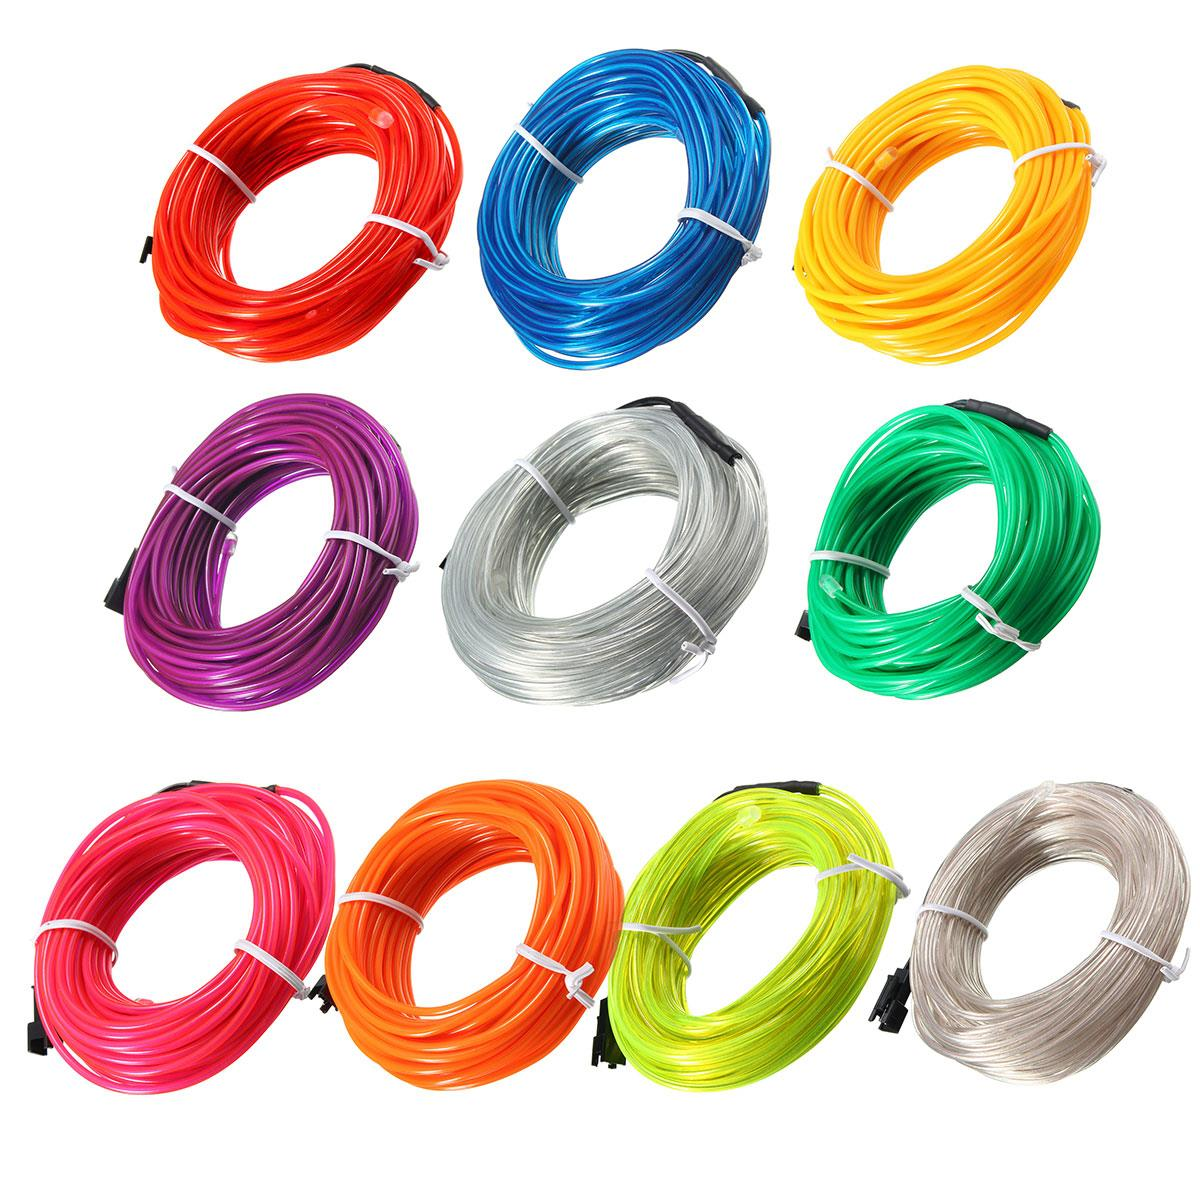 1/2/3/5/10M 12V Auto Car Interior Led Flexible EL Wire Rope Tube Cable Strip Neon Glow Party Light Decoration 10 Colors(China (Mainland))